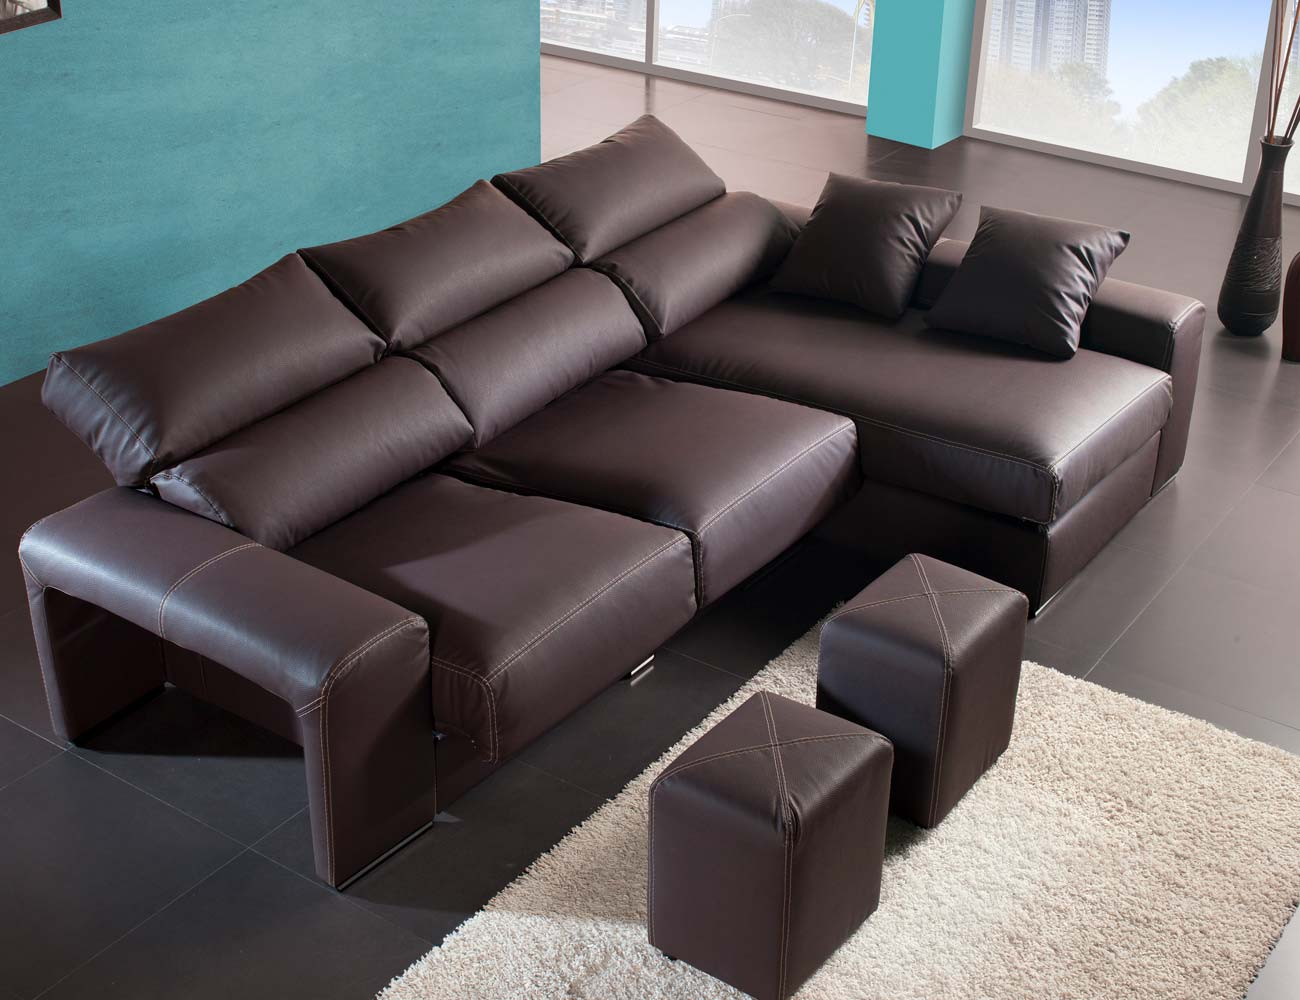 Sofa chaiselongue moderno polipiel chocolate poufs taburetes